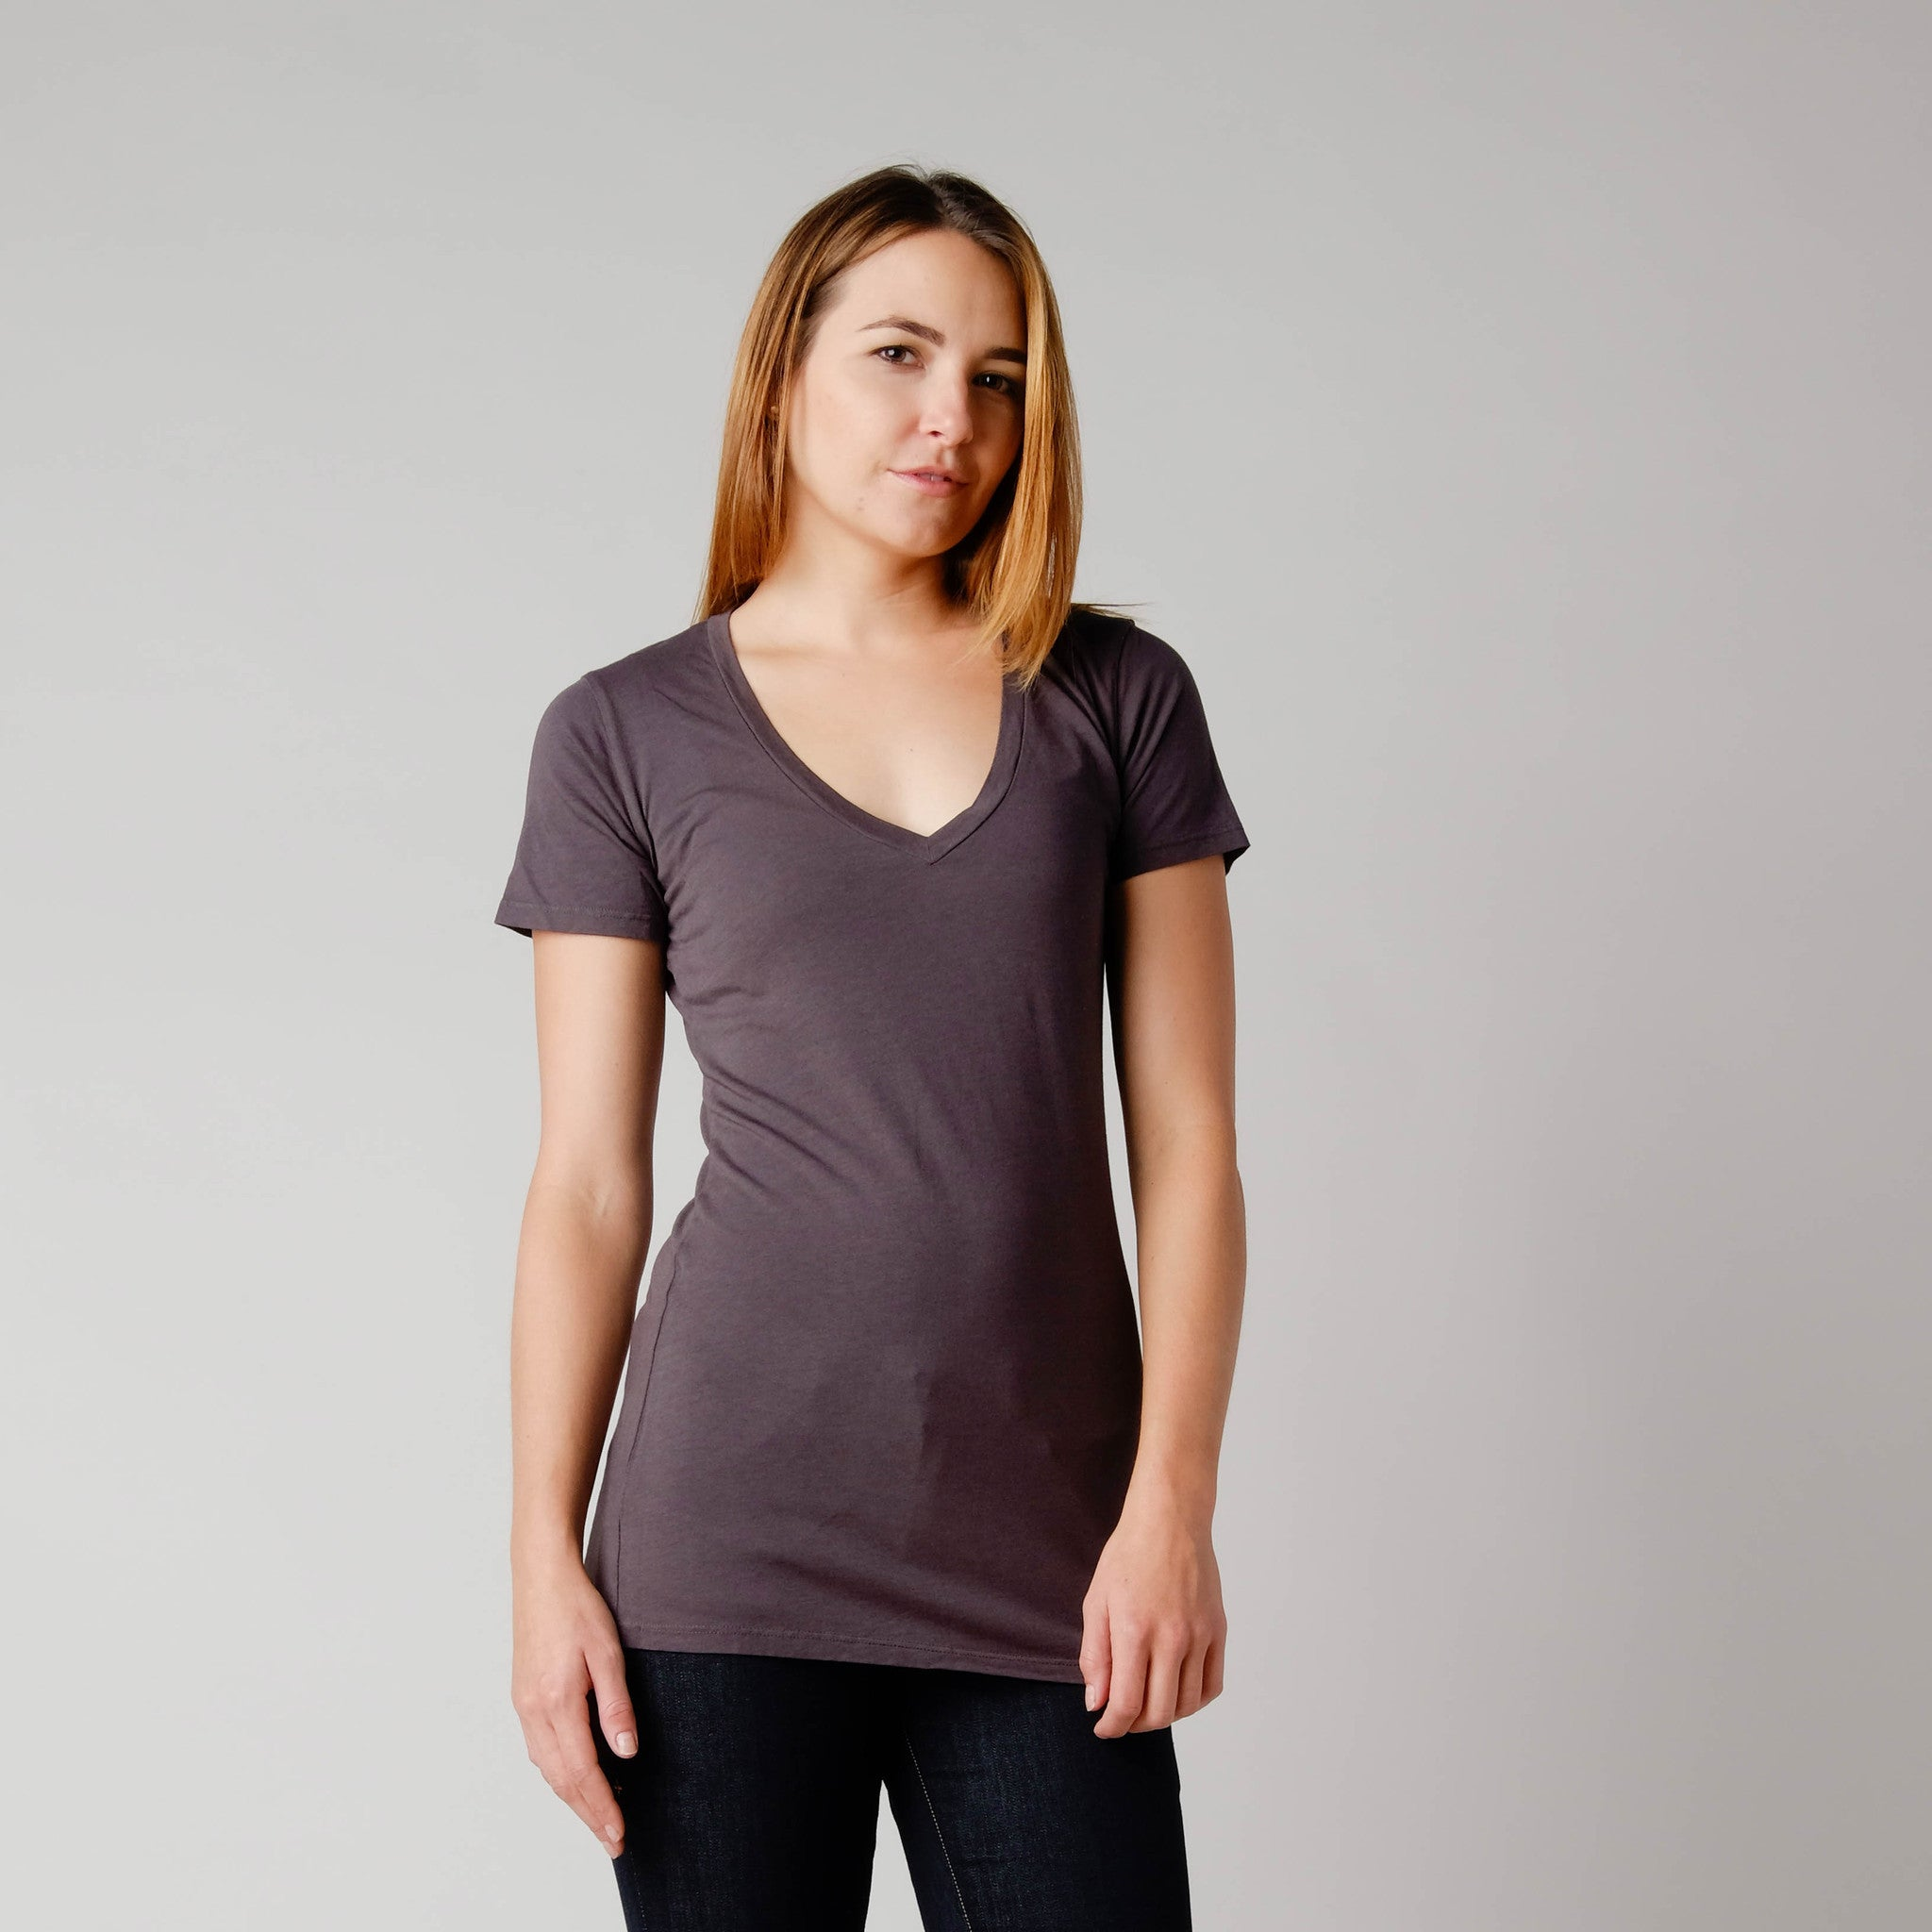 BDC Hemp/Organic Cotton Vee Neck Tee Charcoal